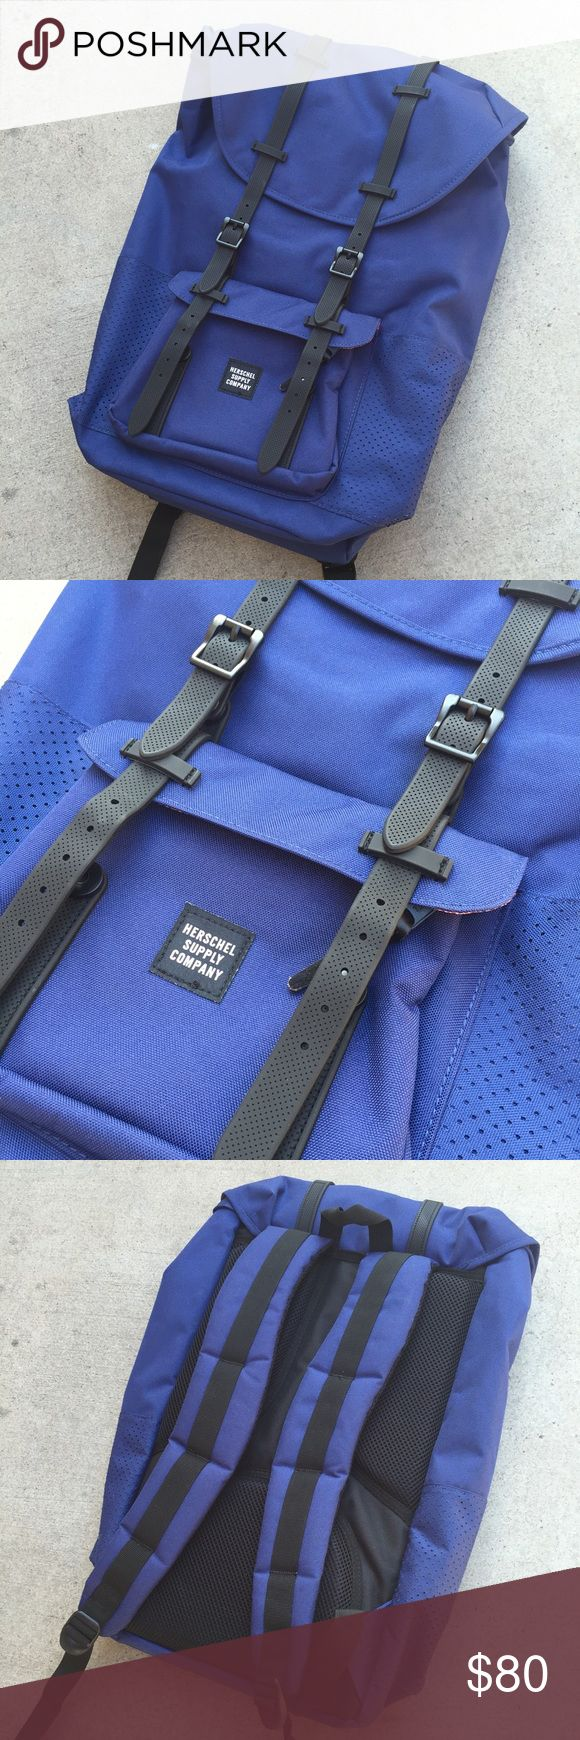 Herschel Supply Company Backpack New Blue Herschel Company Backpack. Missing buckle on the bottom buckles. No trades. Herschel Supply Company Bags Backpacks